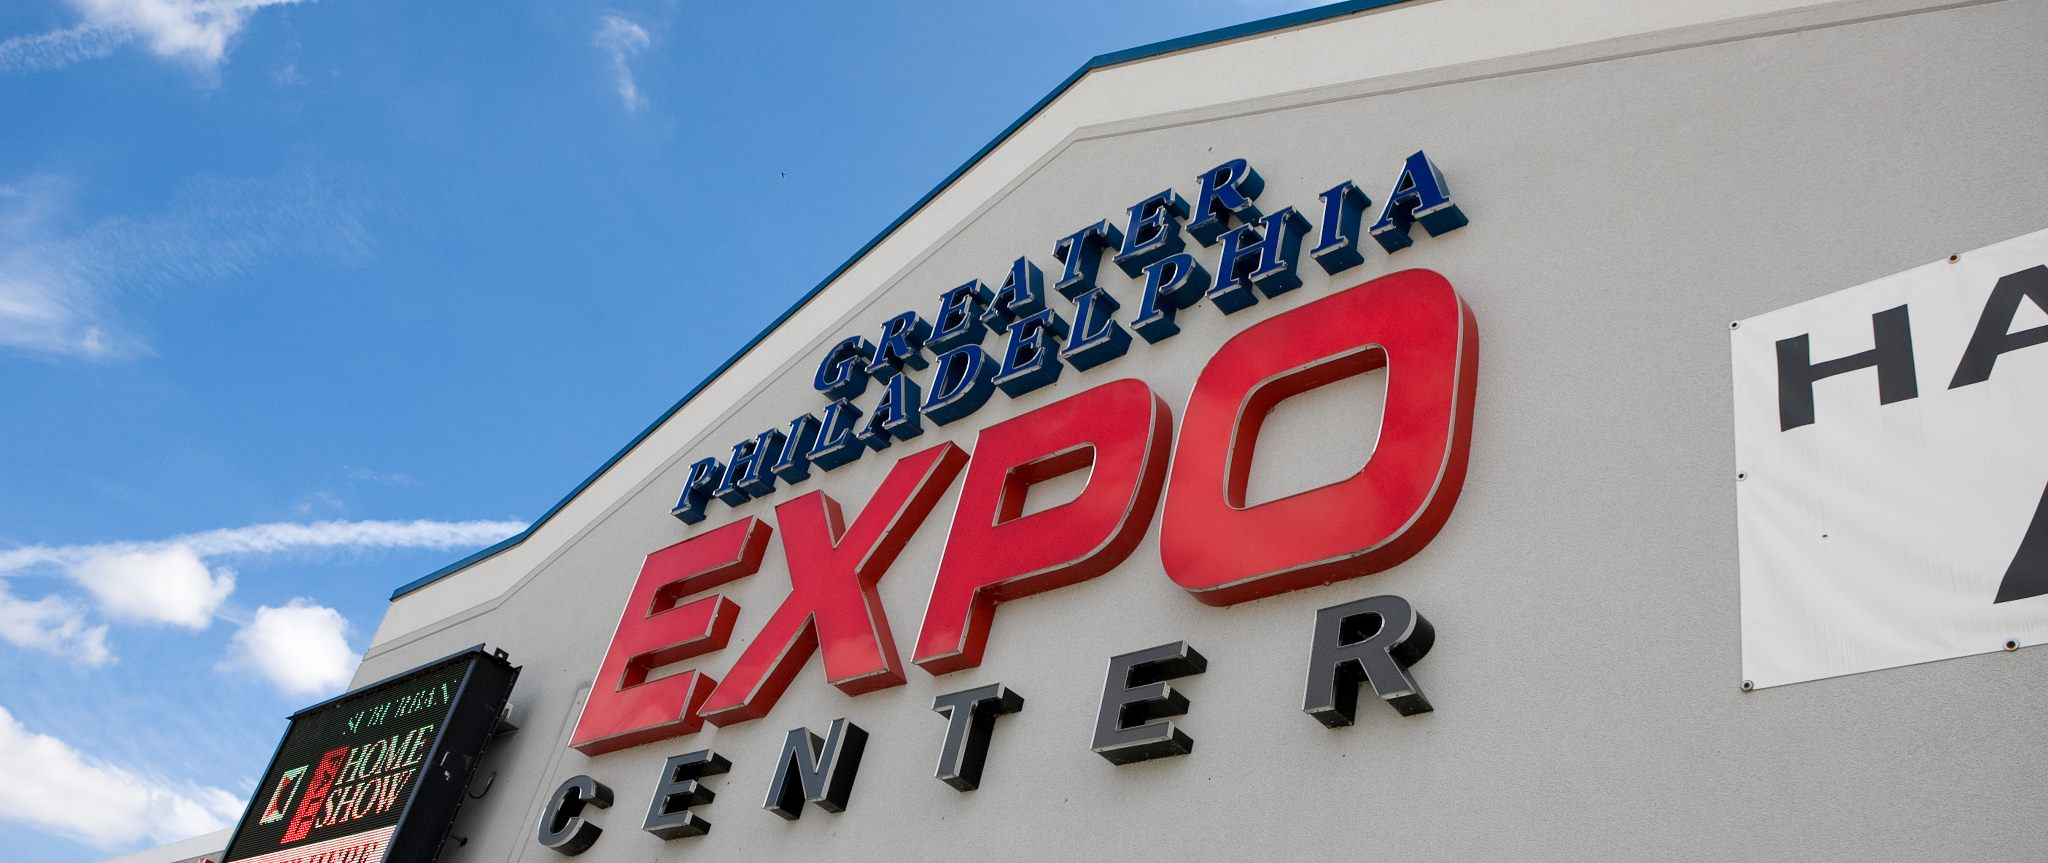 Greater Philadelphia Expo Center in Oaks to Add Drive-In Movie Theater